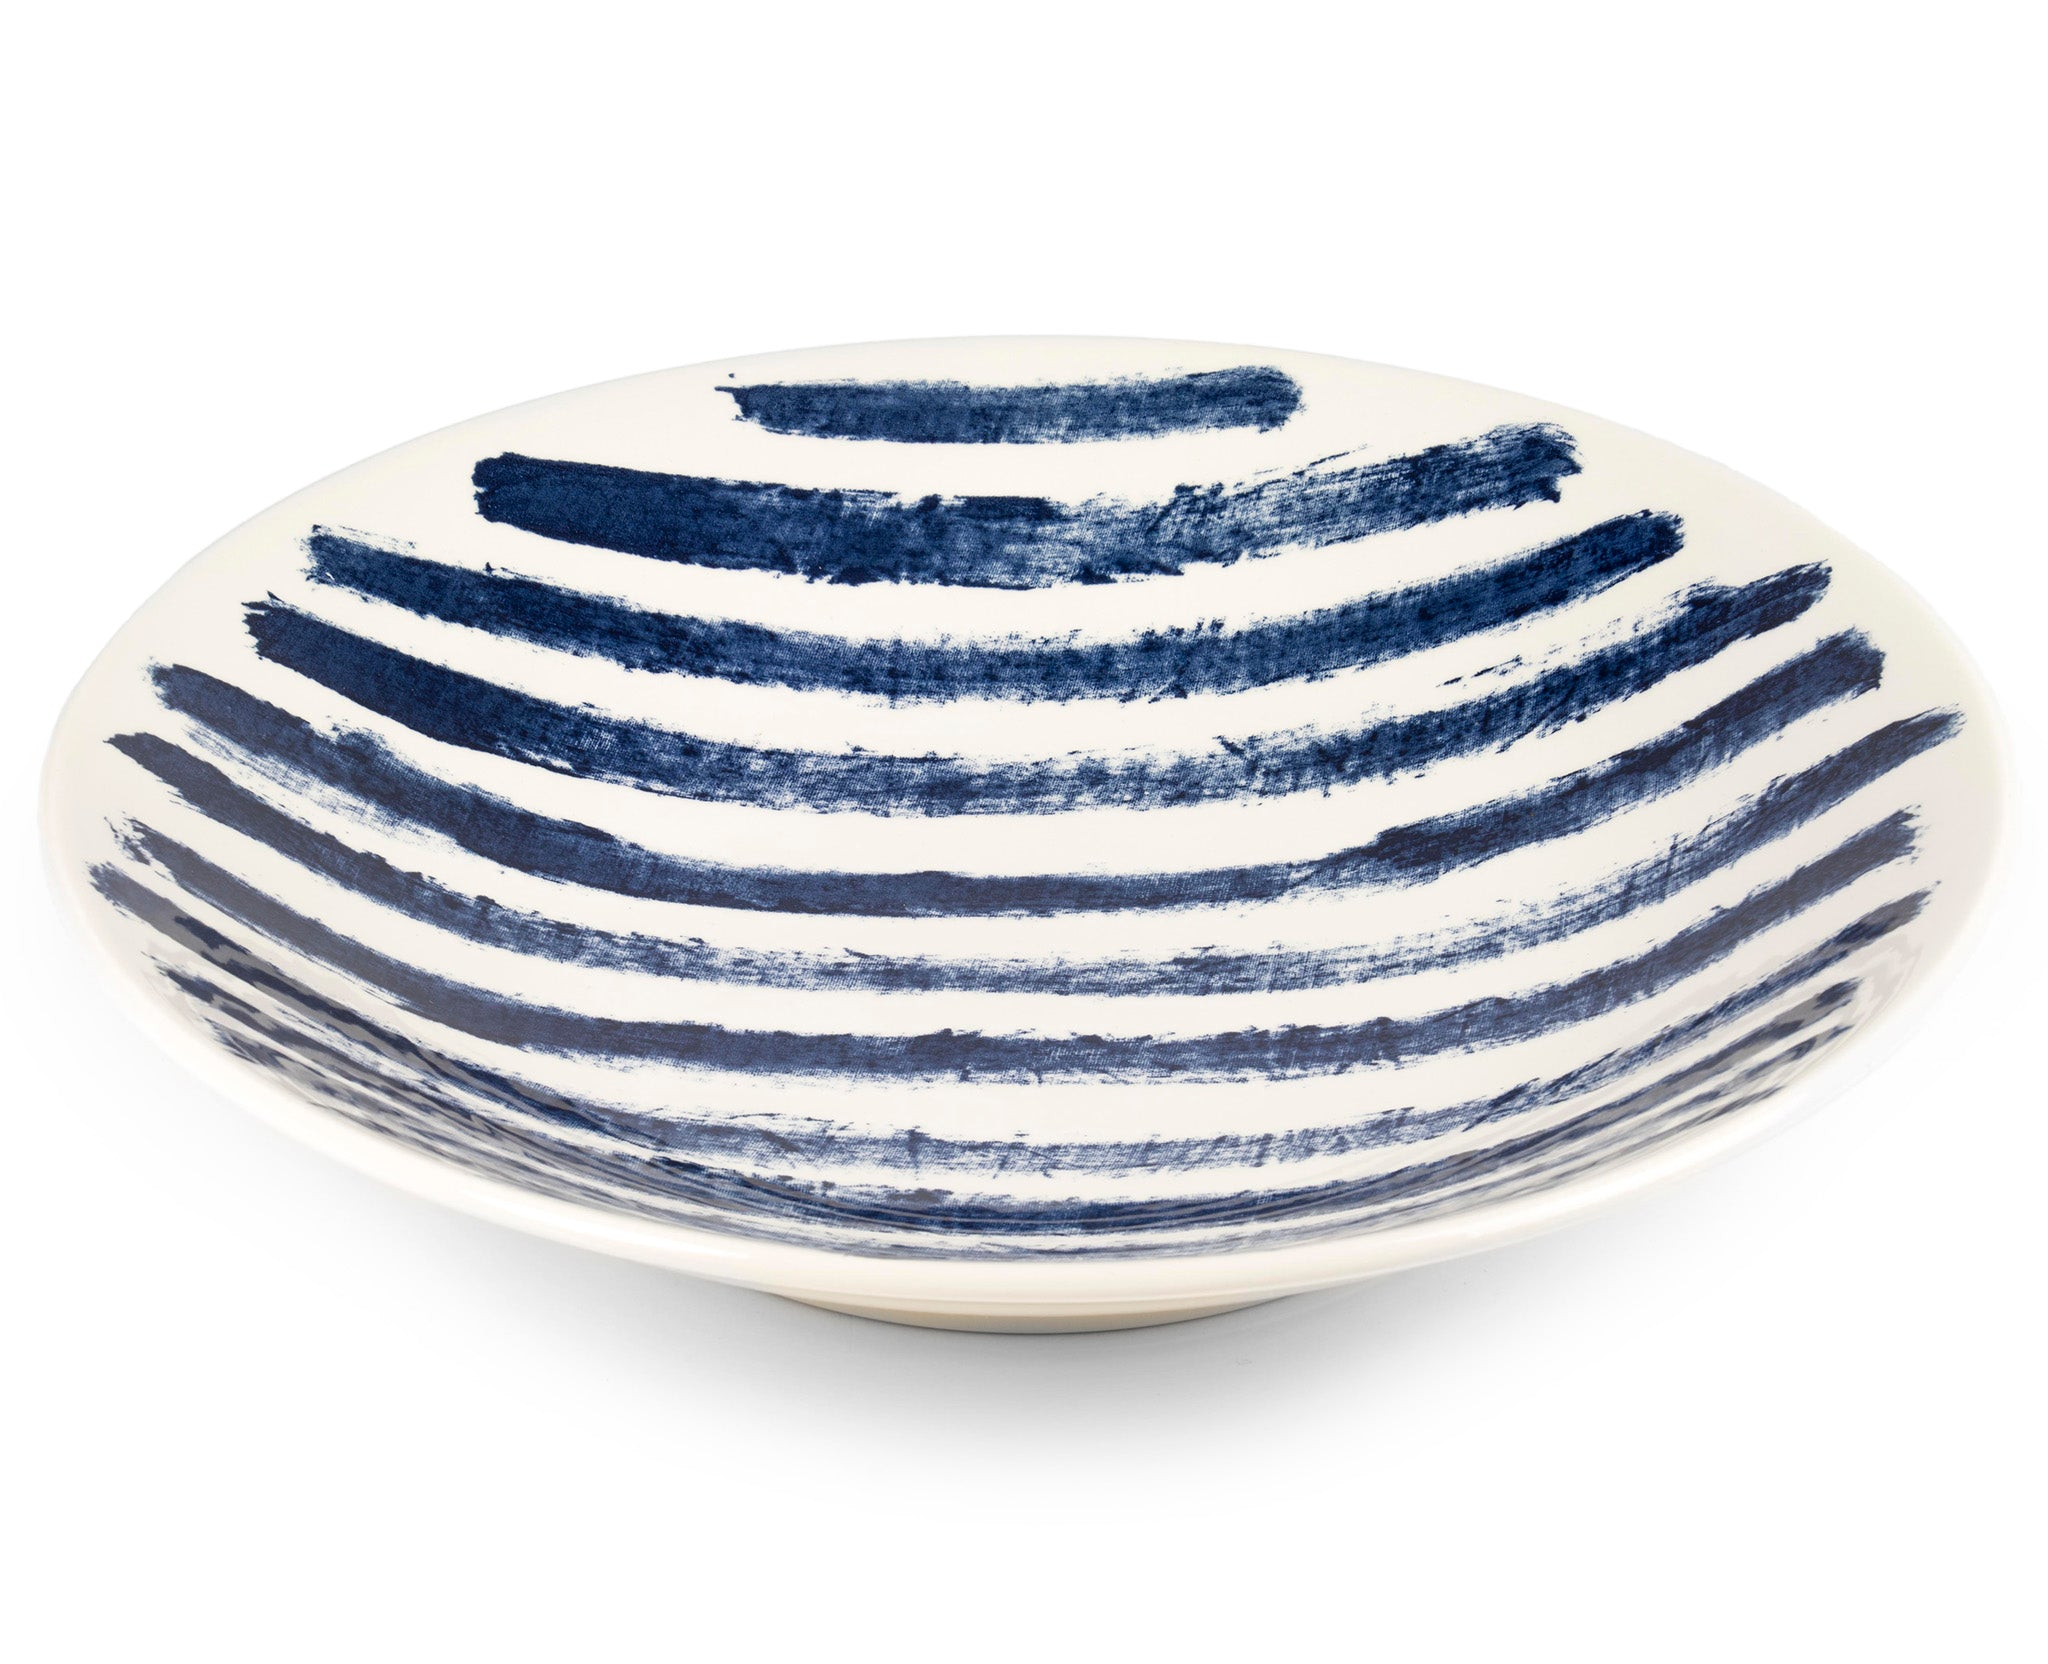 1882Ltd Indigo Rain Large Serving Bowl